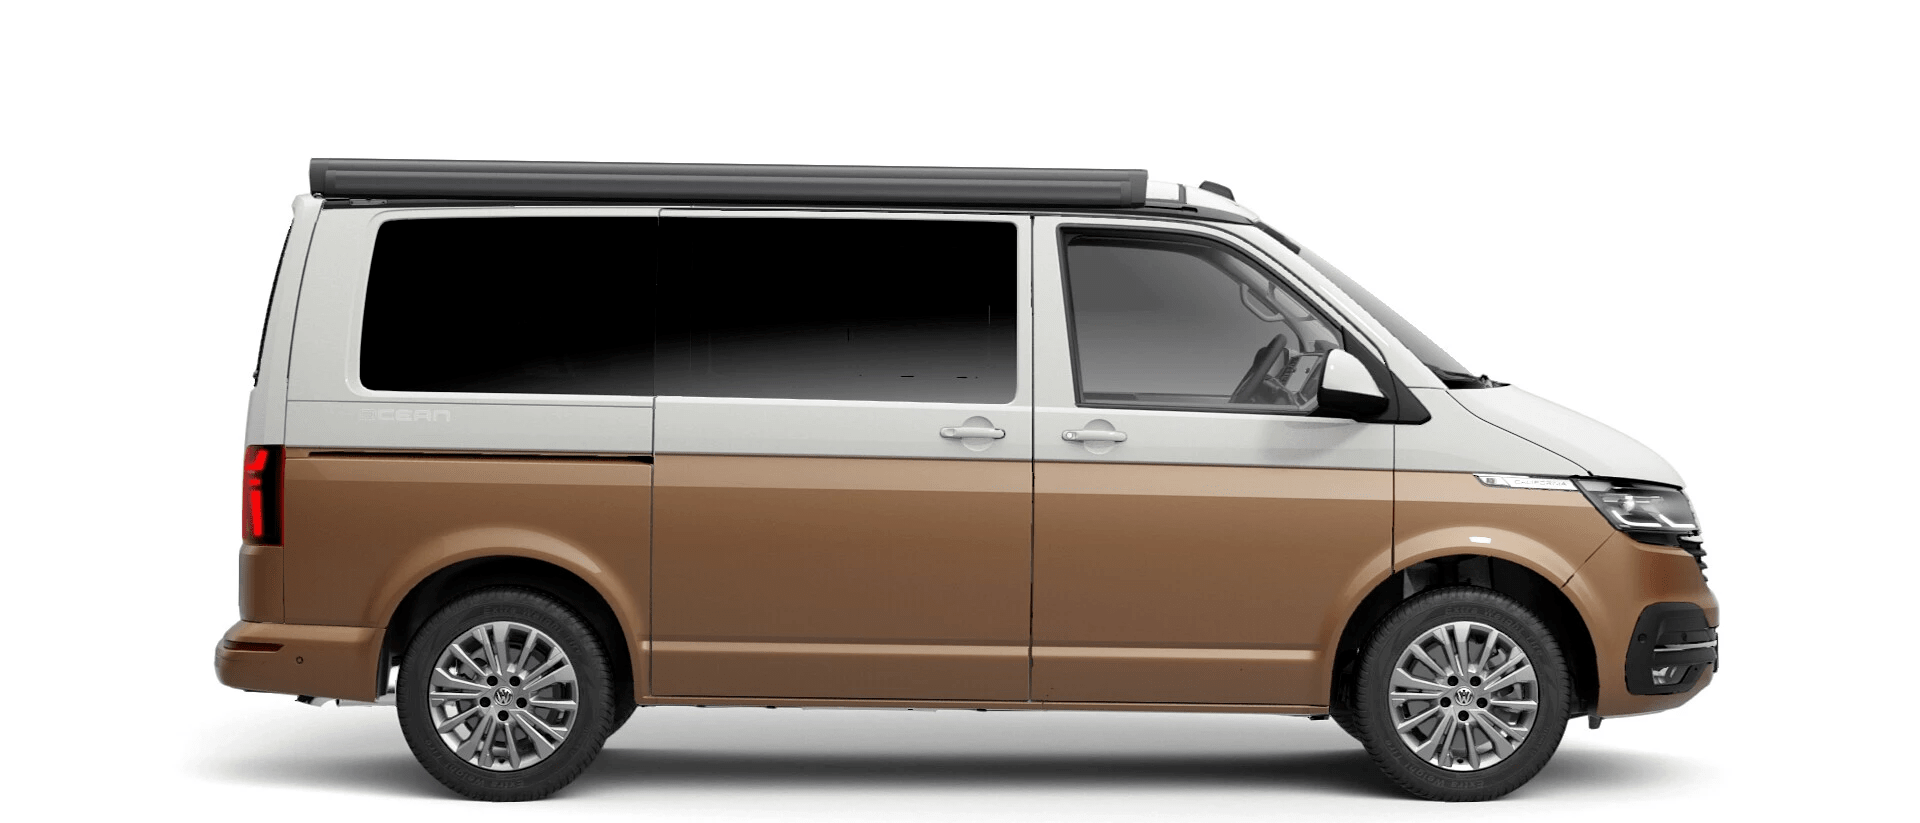 Volkswagen Van Range California - Available In Two Tone Candy White & Metallic Copper Bronze